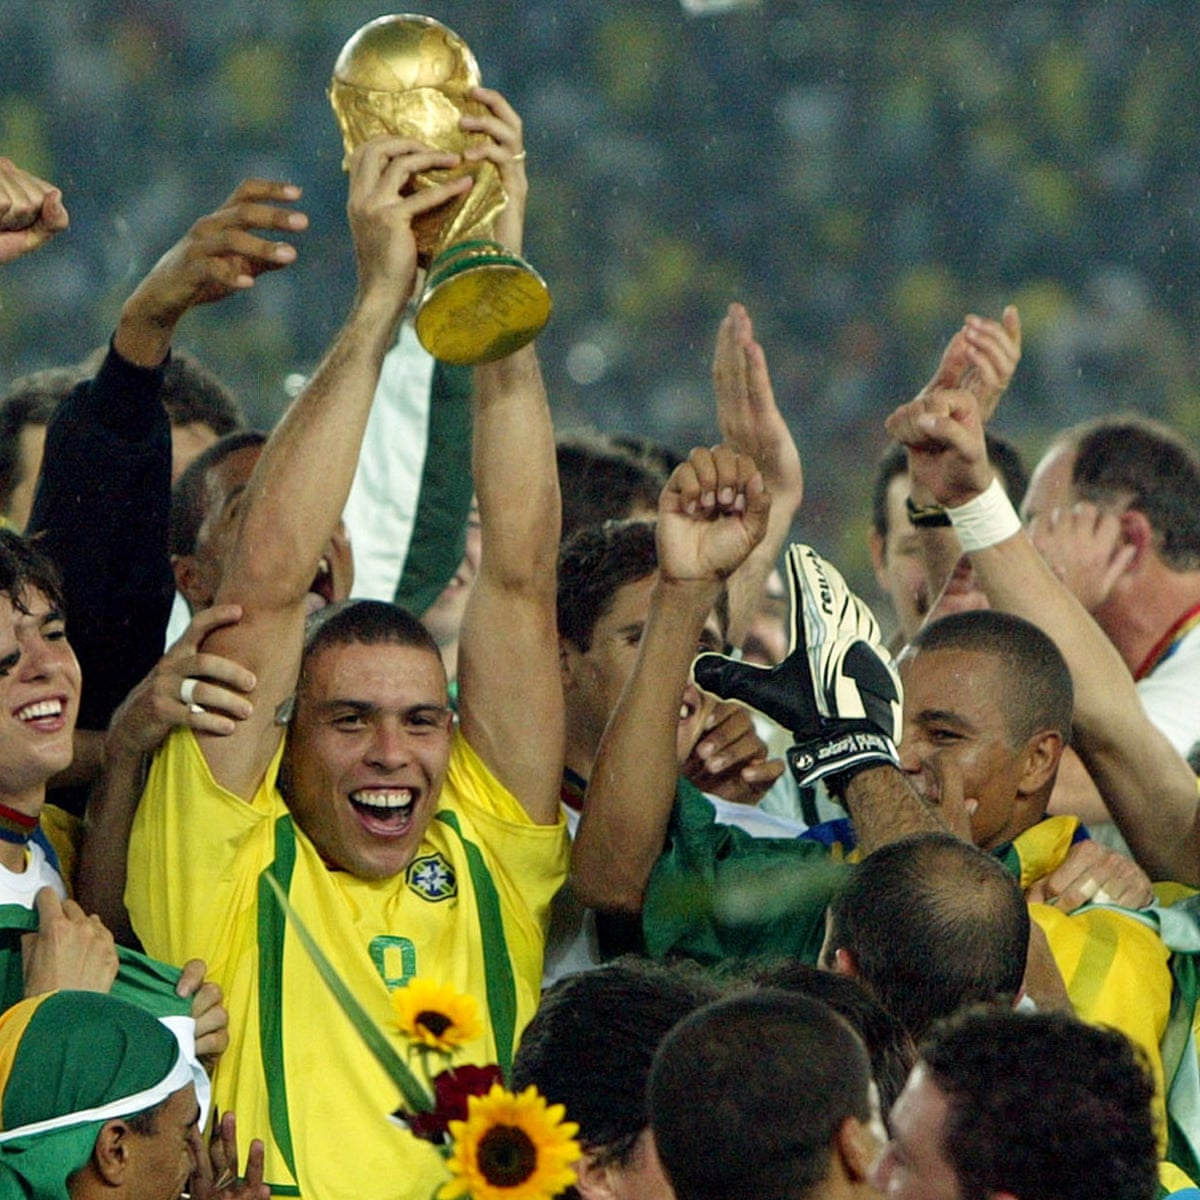 Ronaldo S Redemption Recalling The Brazil Striker S World Cup Fairytale 15 Years On Brazil The Guardian